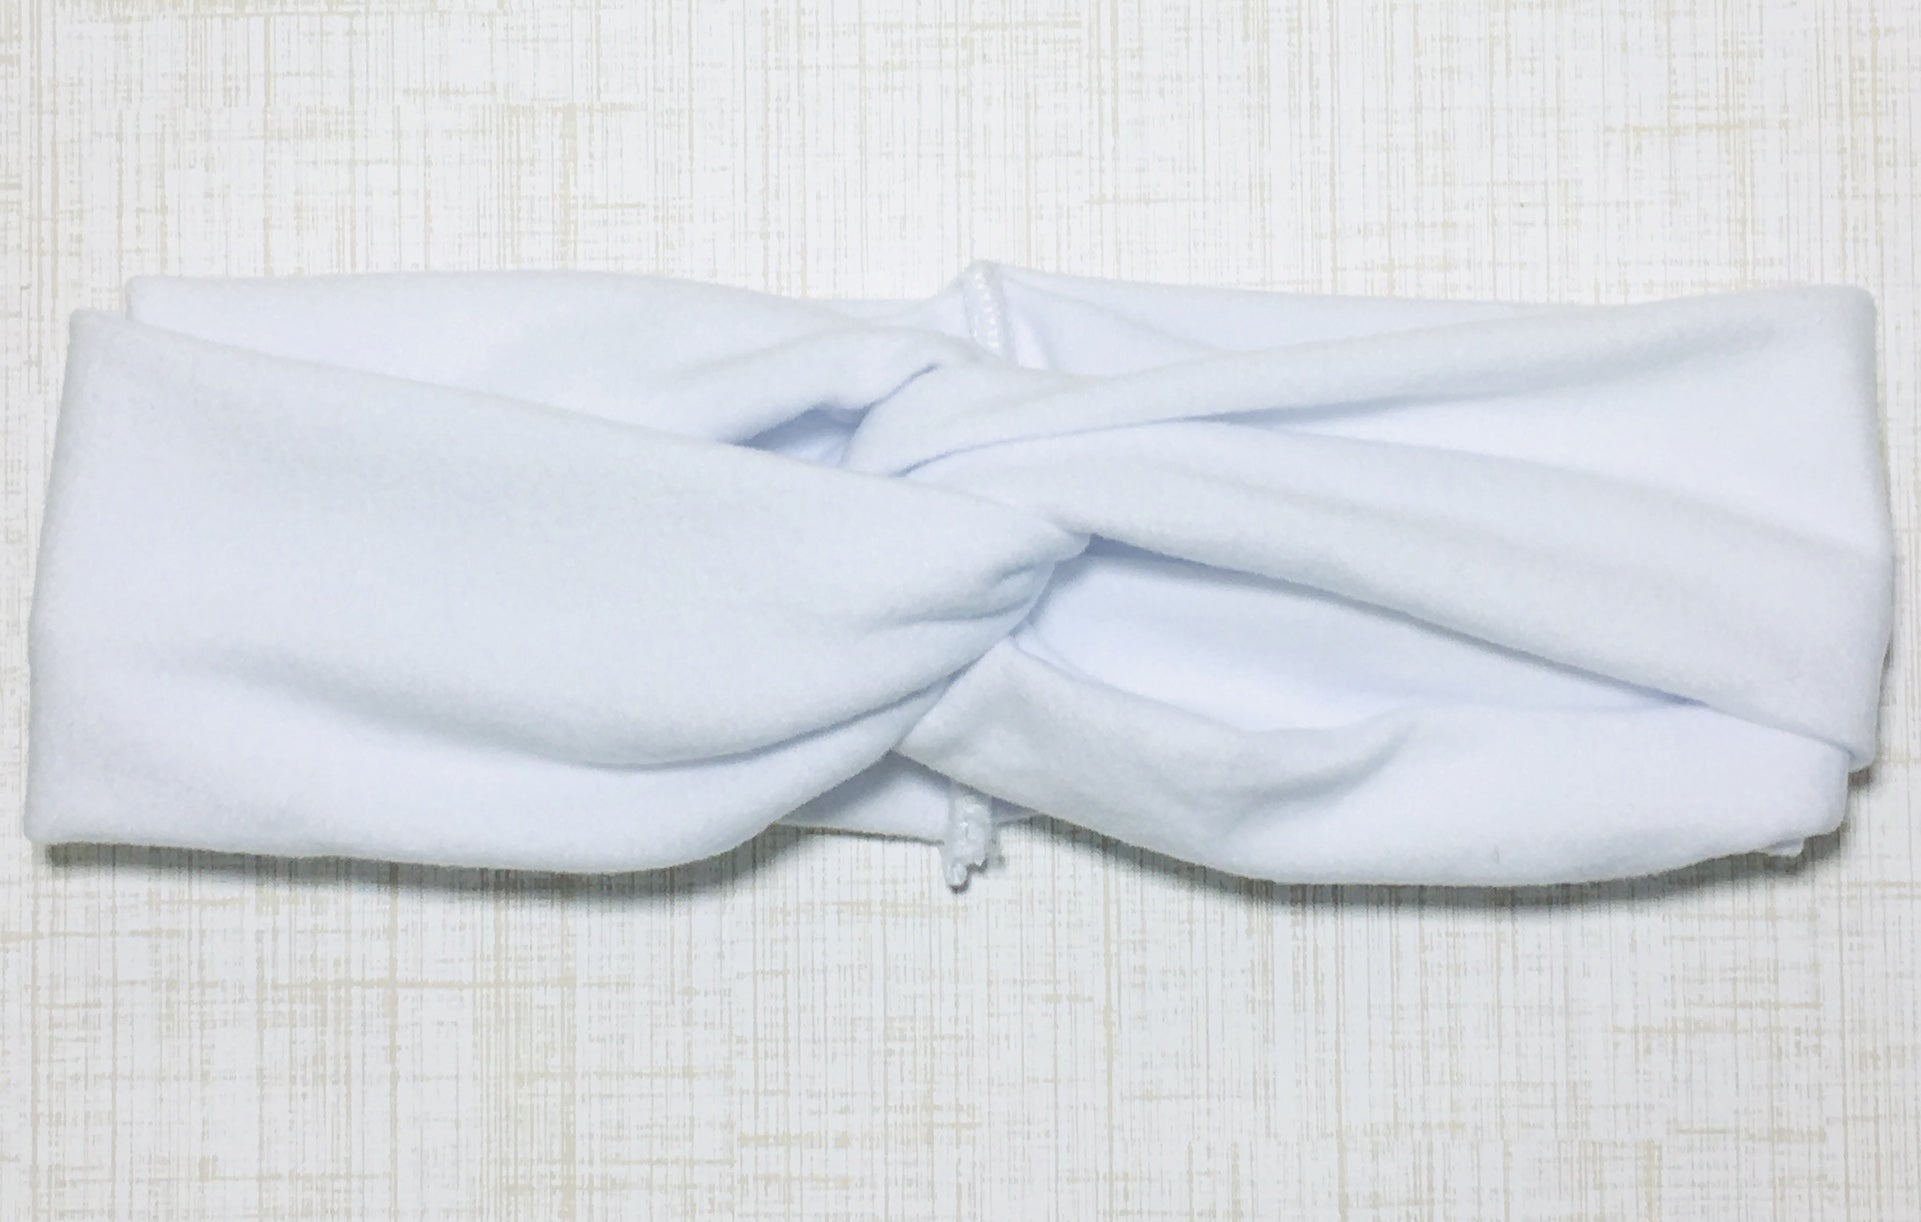 Jersey Twist Headband in White - shabbyflowers.com